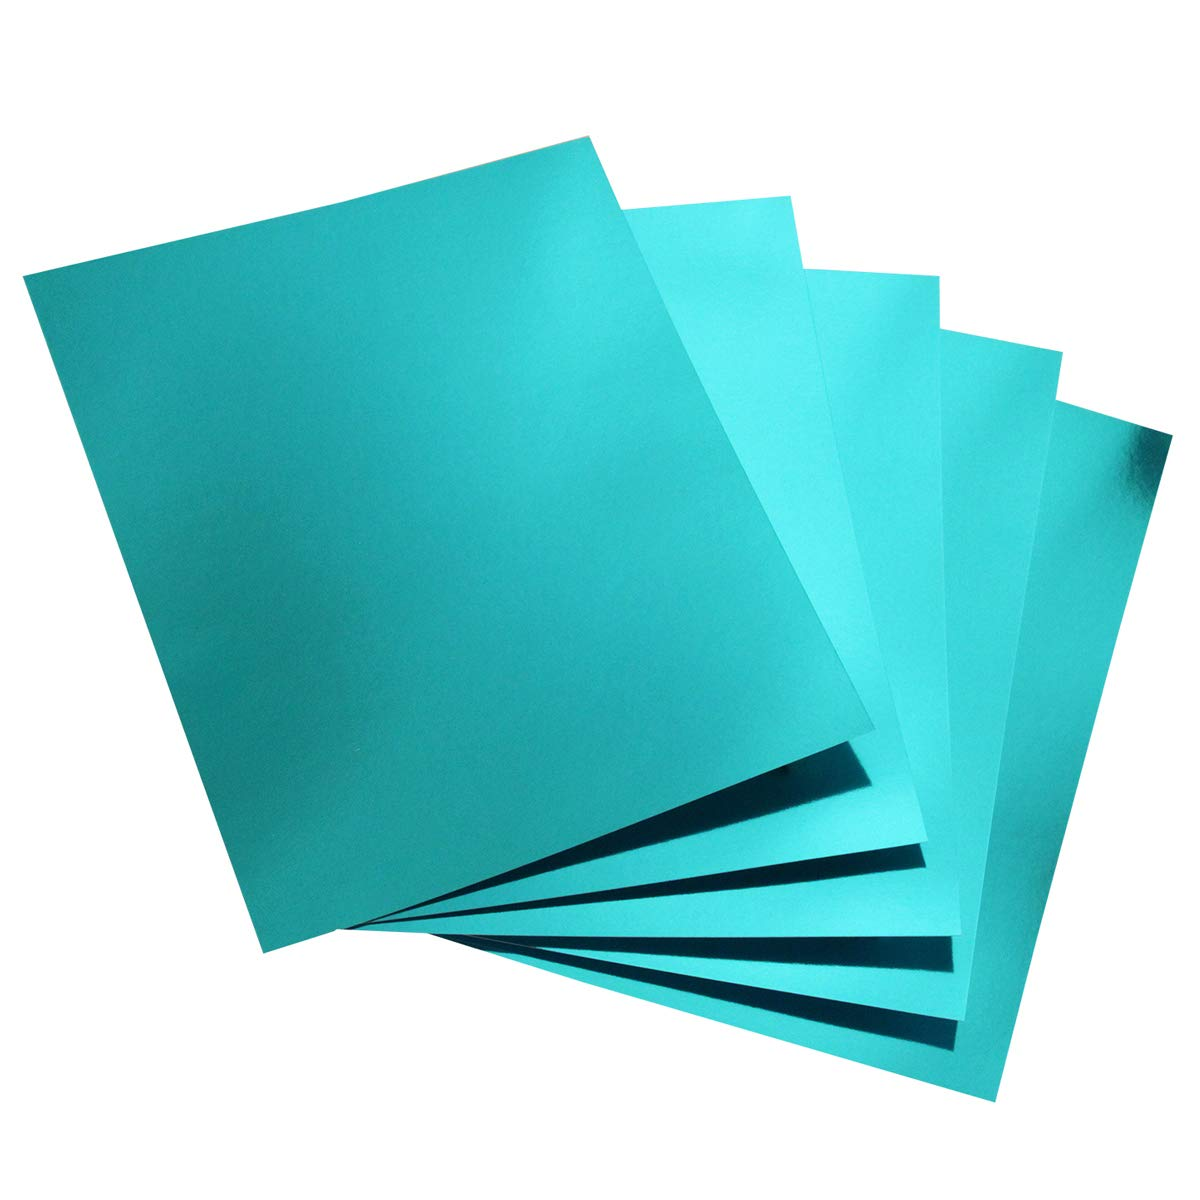 Hygloss Products Metallic Foil Board Sheets-8.5 x 11 Inches - Light Blue, 100 Pack by Hygloss